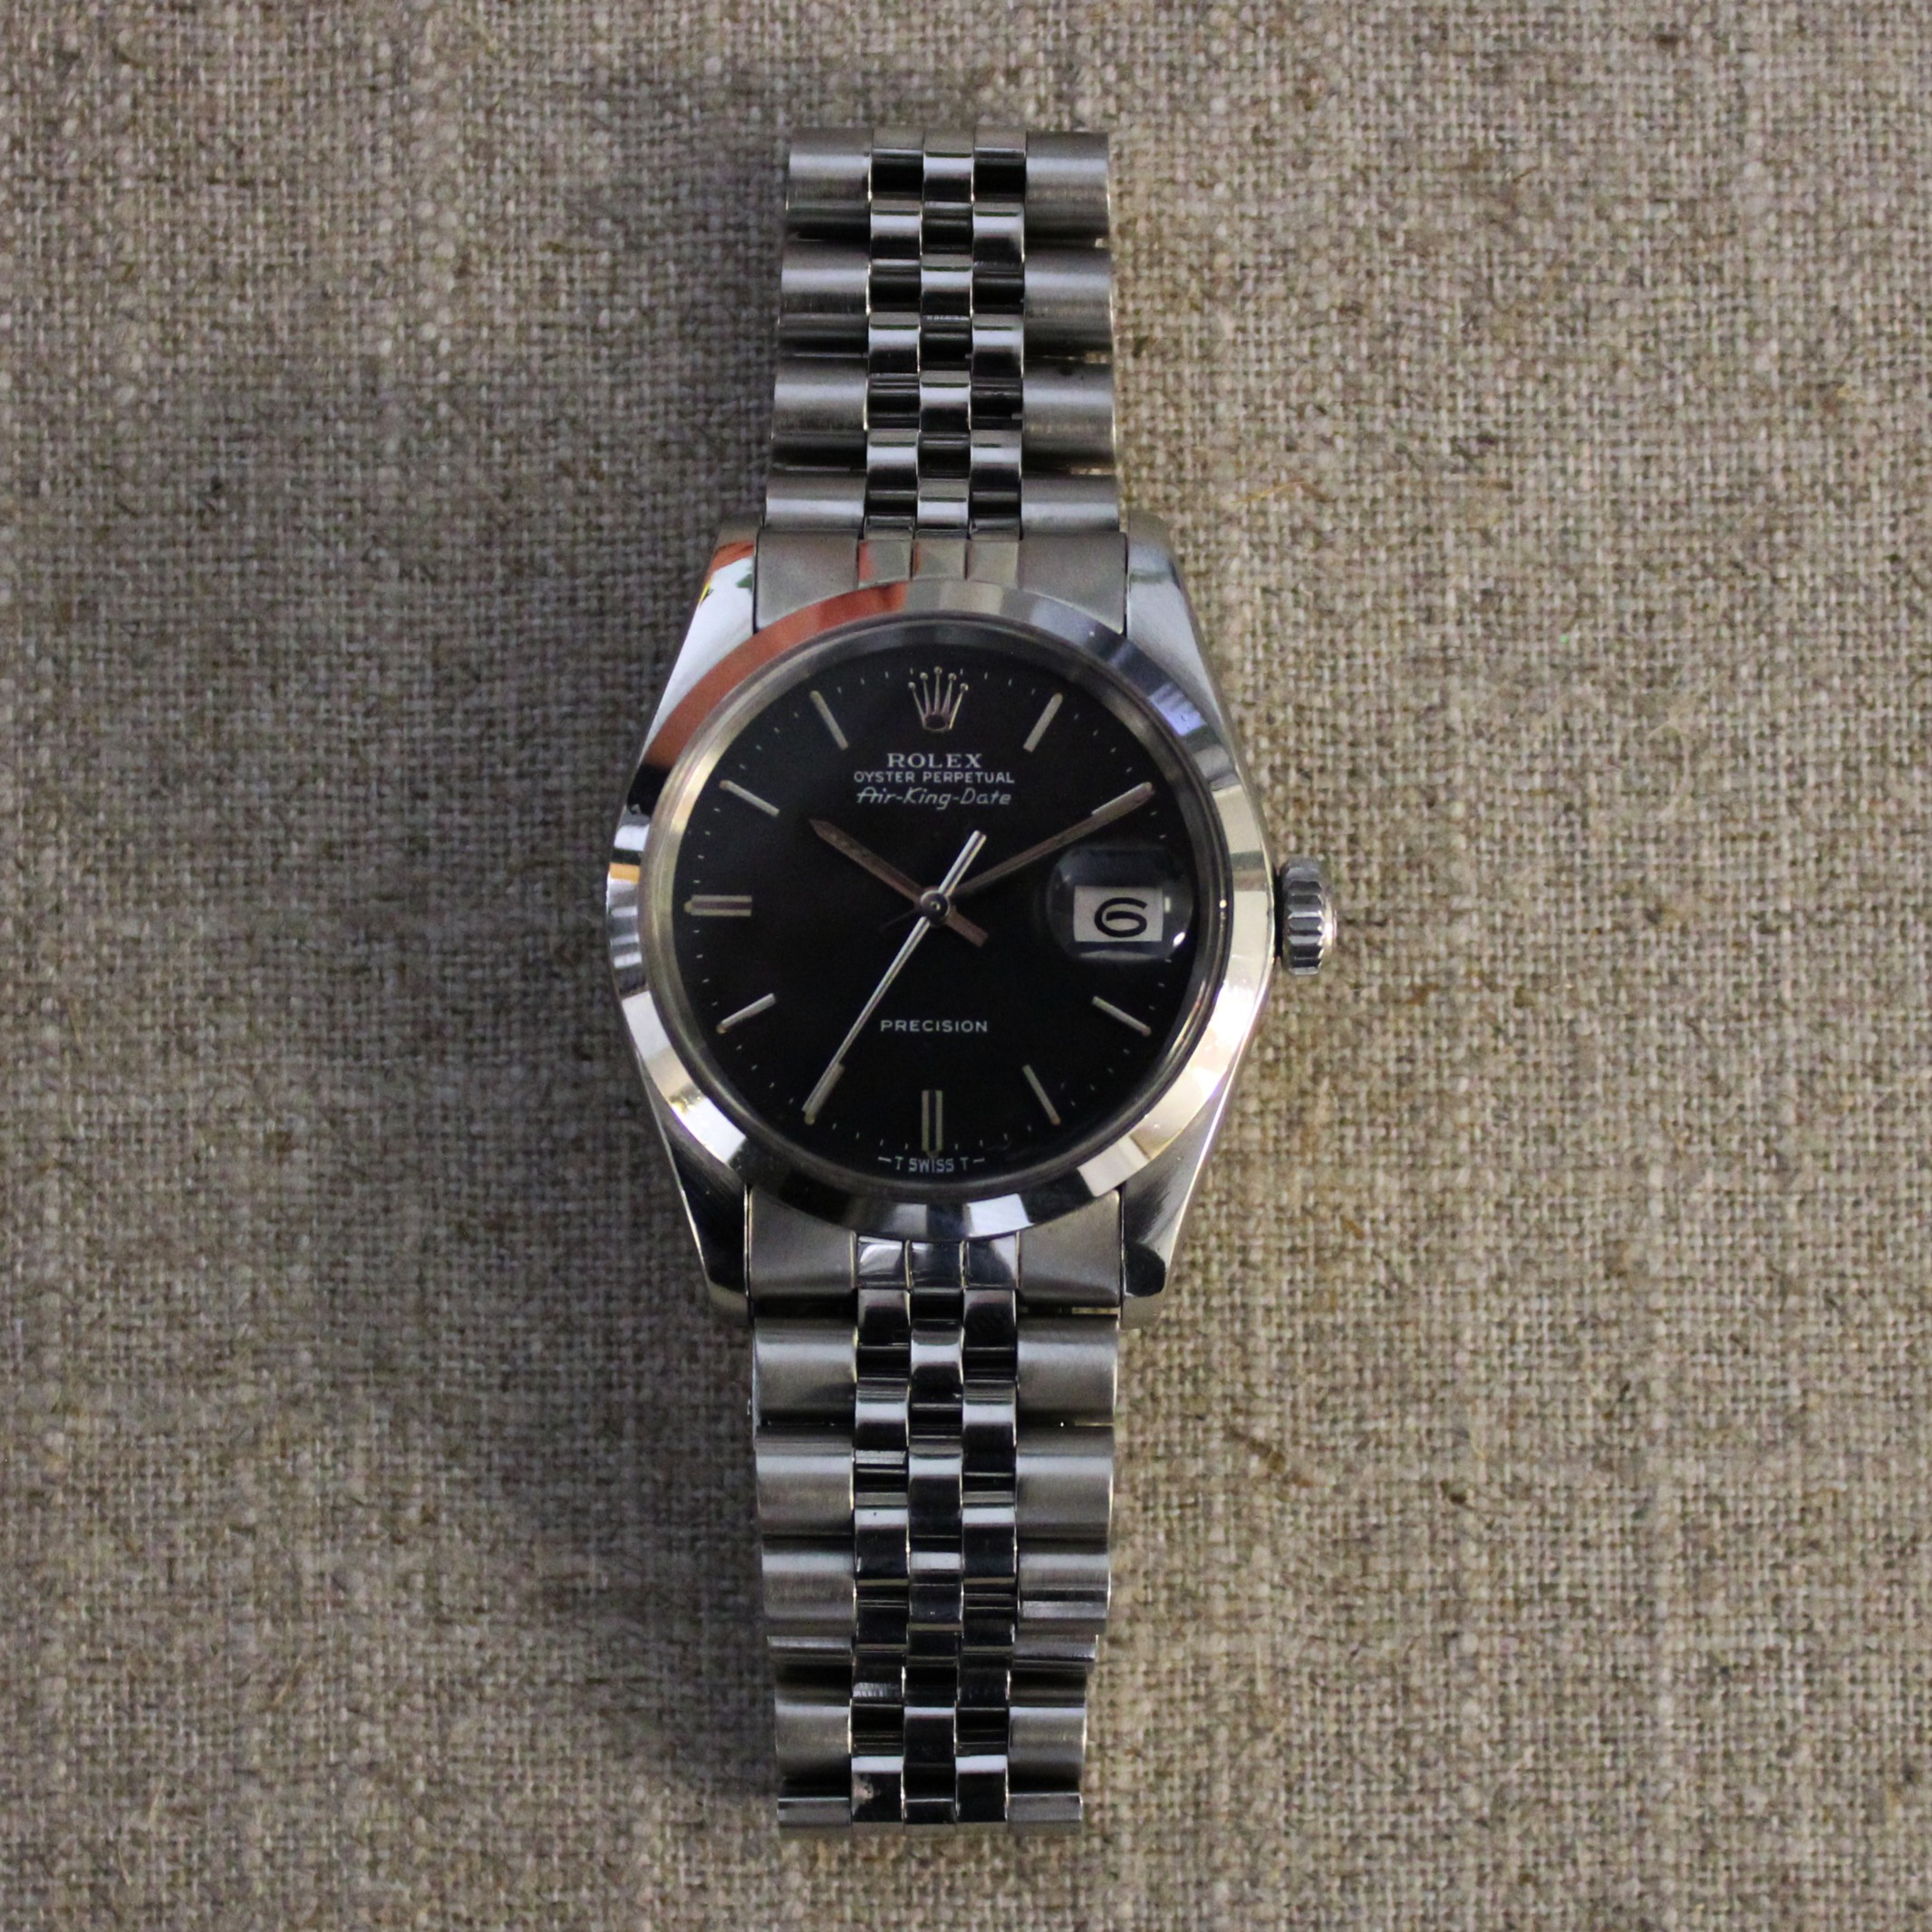 Stainless Steel Rolex Oyster Perpetual AirKing Circa 1976